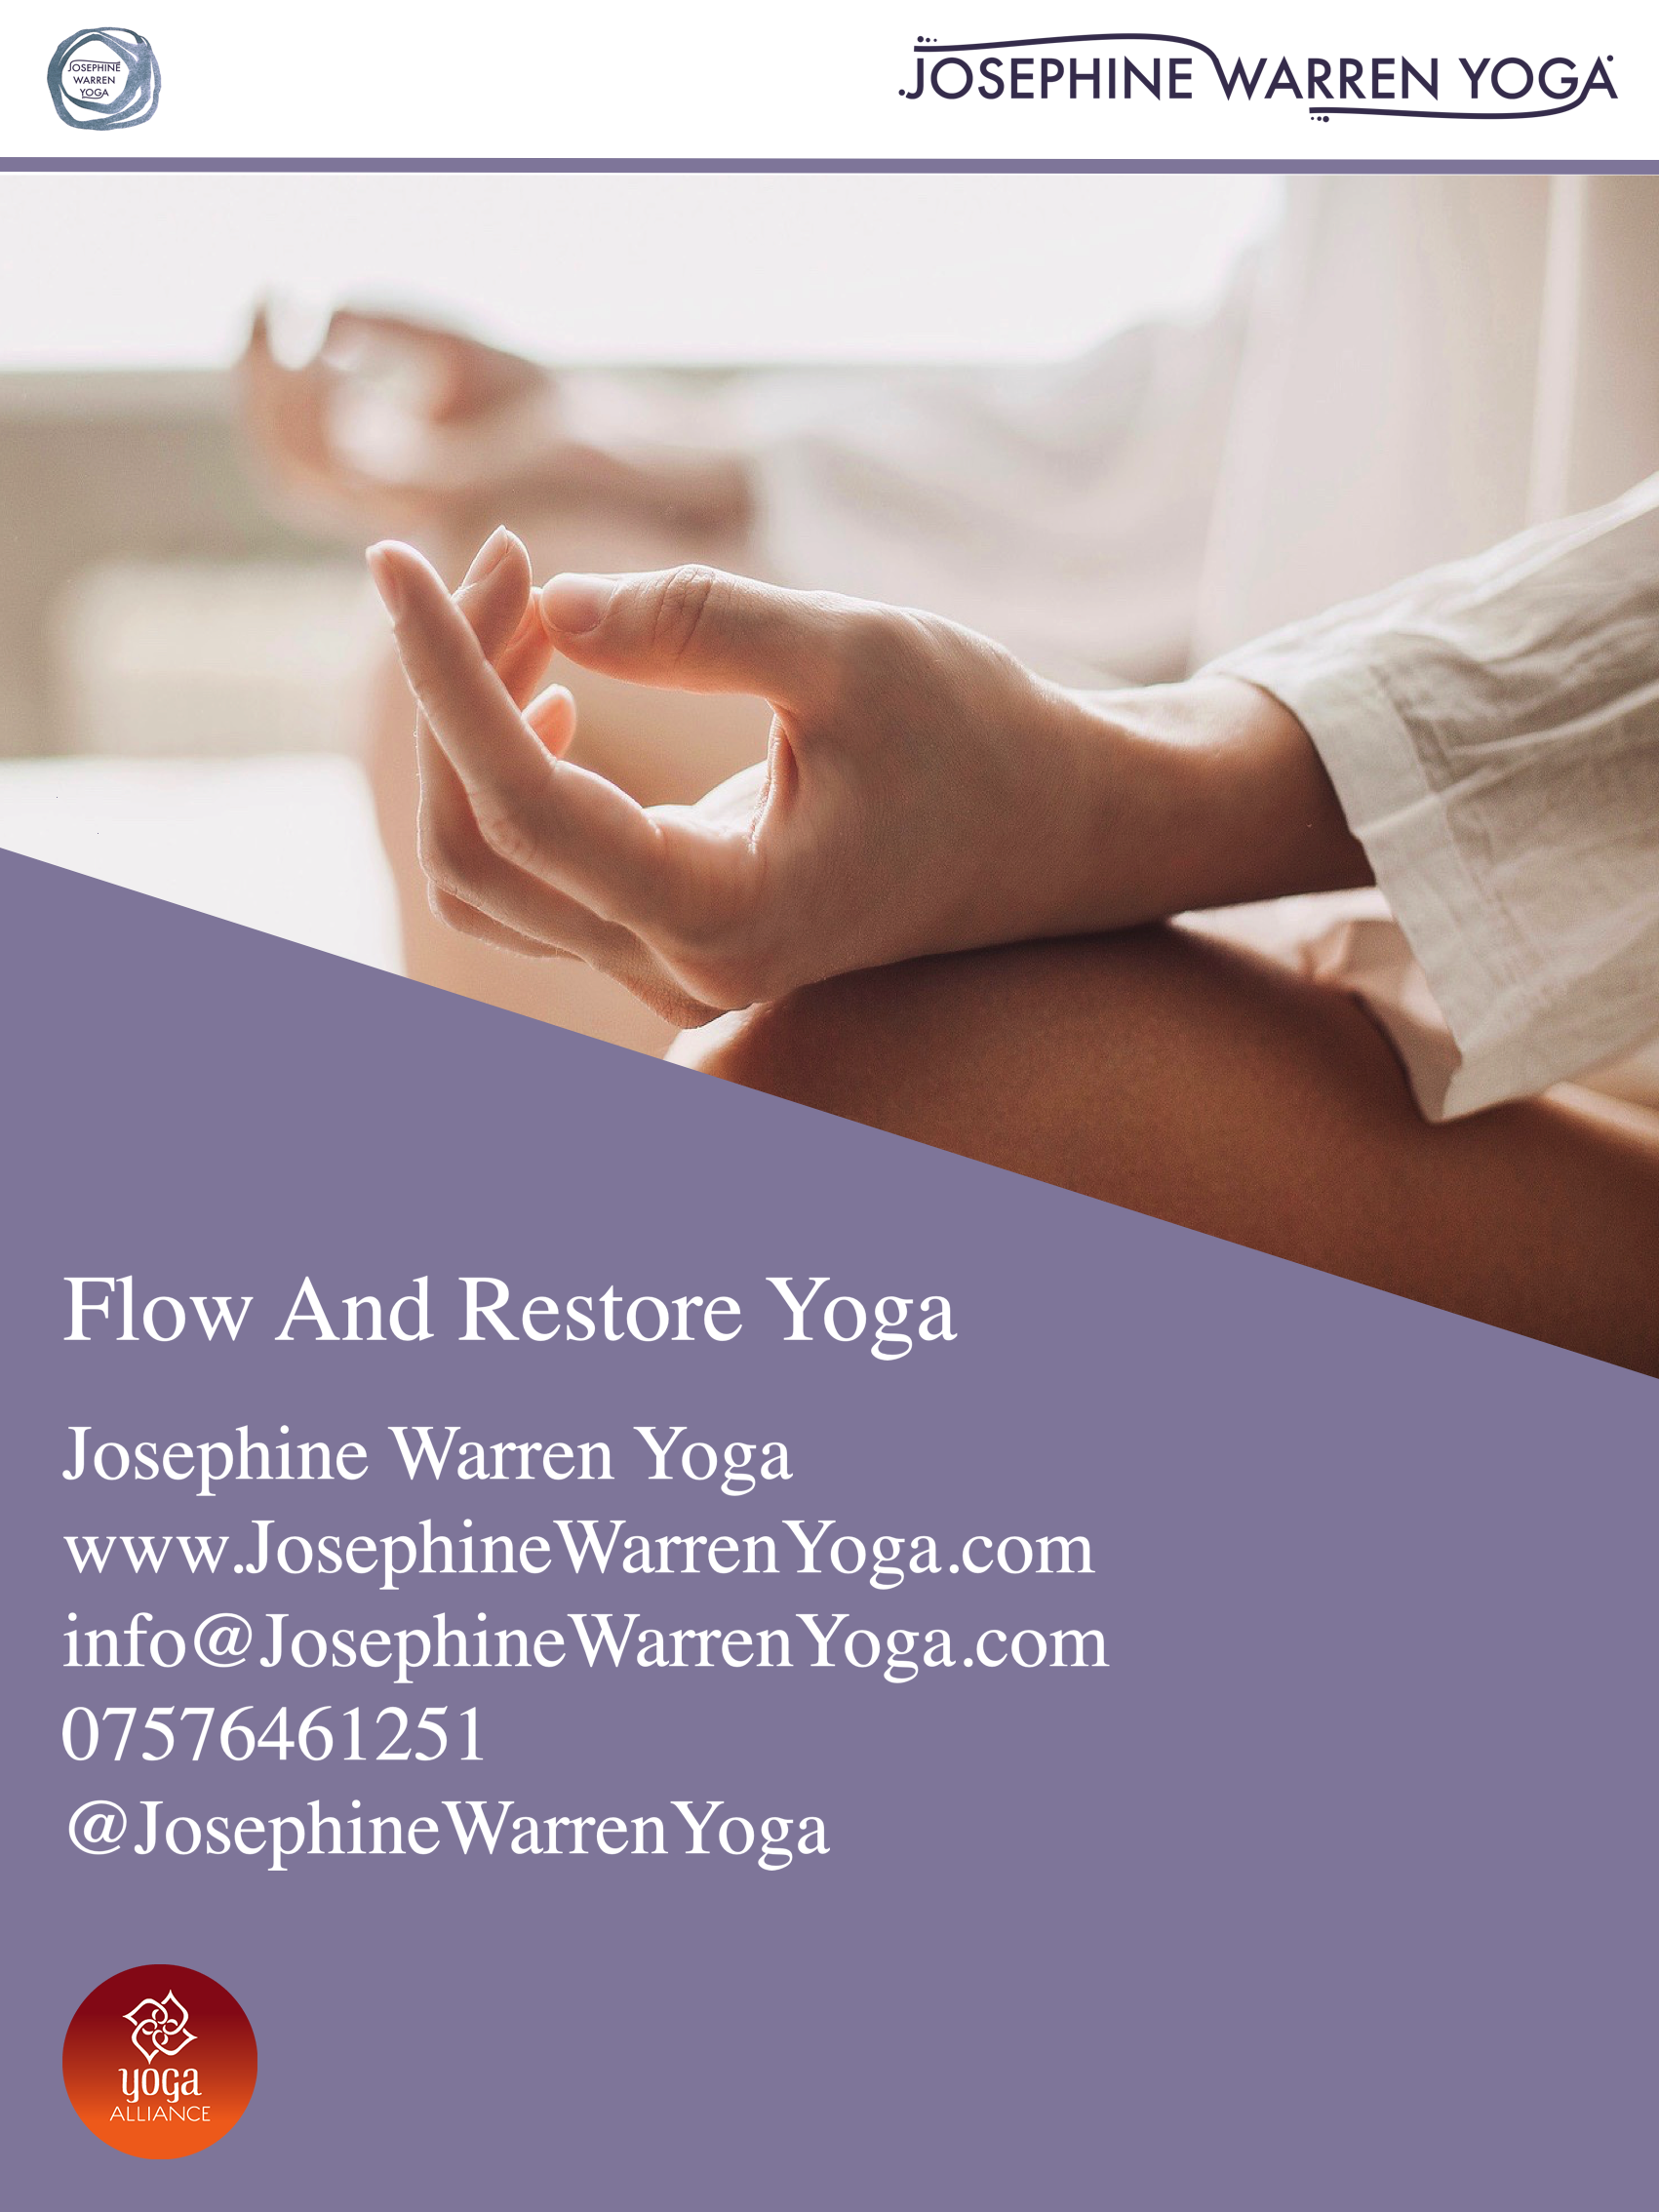 flow and resore YOGA POSTER 2019 copy